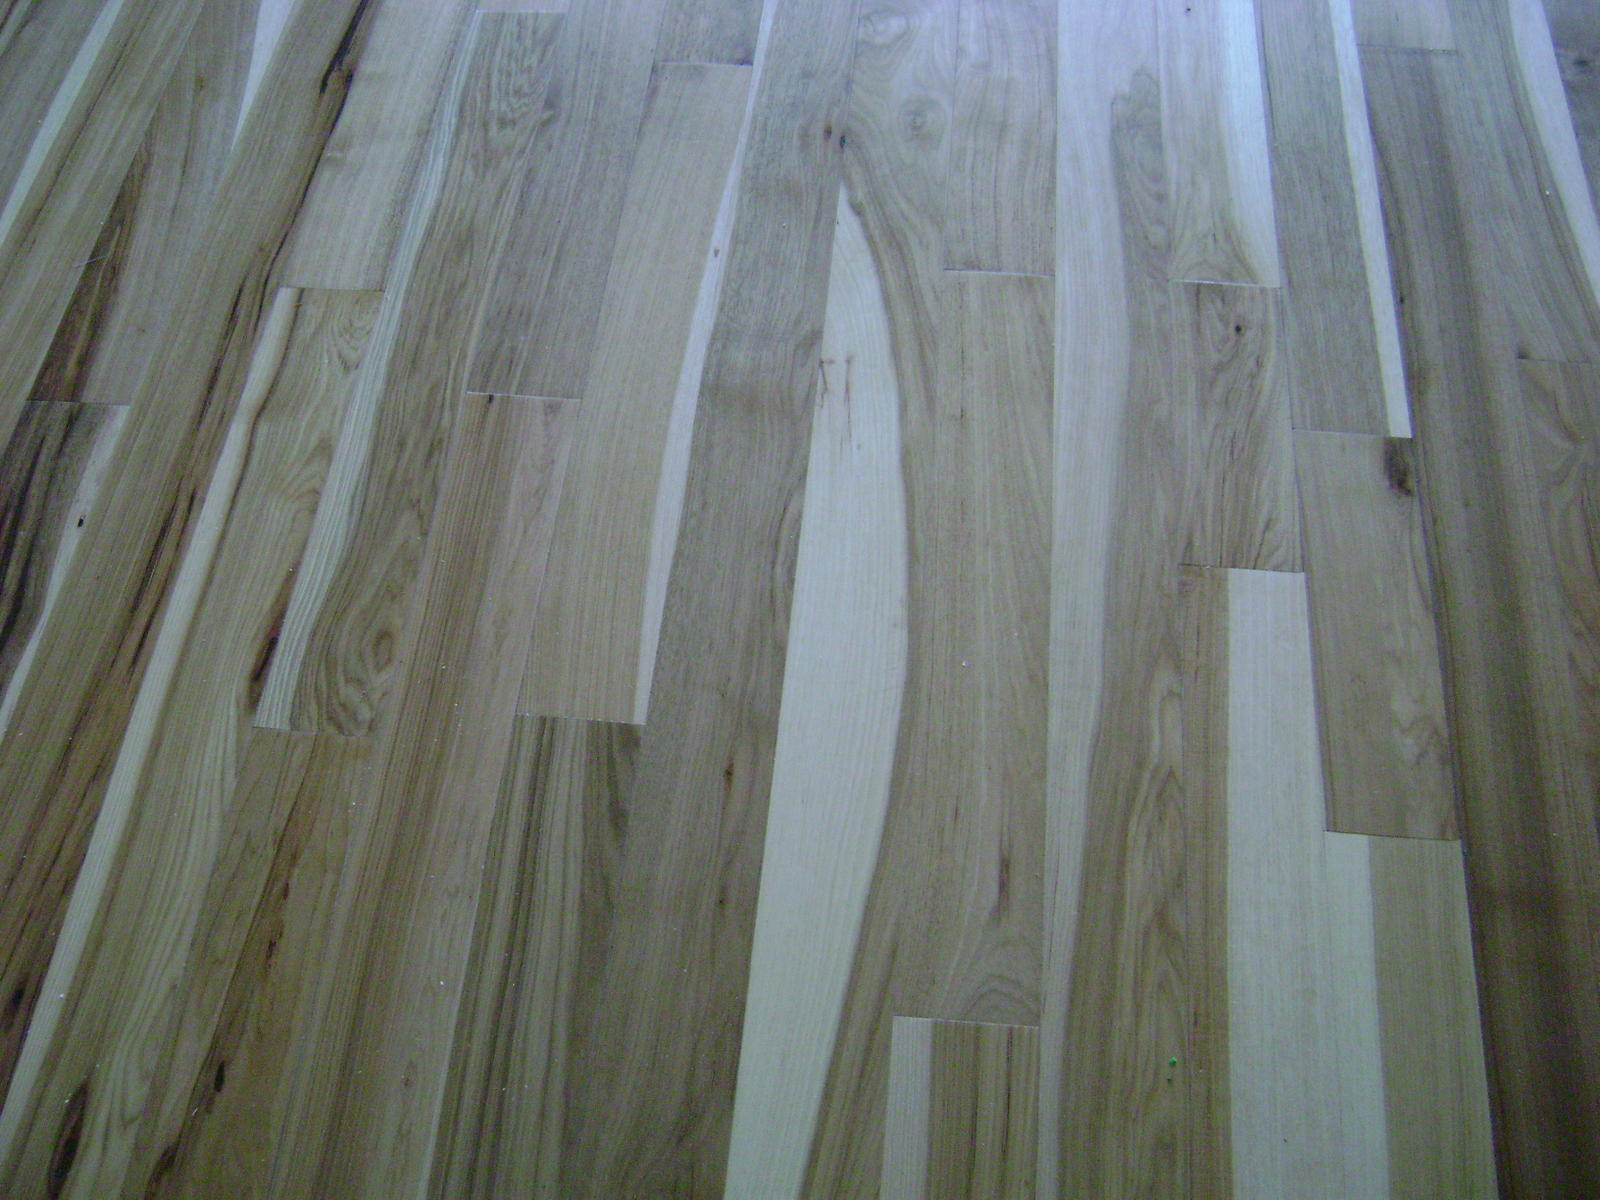 Hardwood floors vs carpet house remodeling decorating for Hardwood floors vs carpet